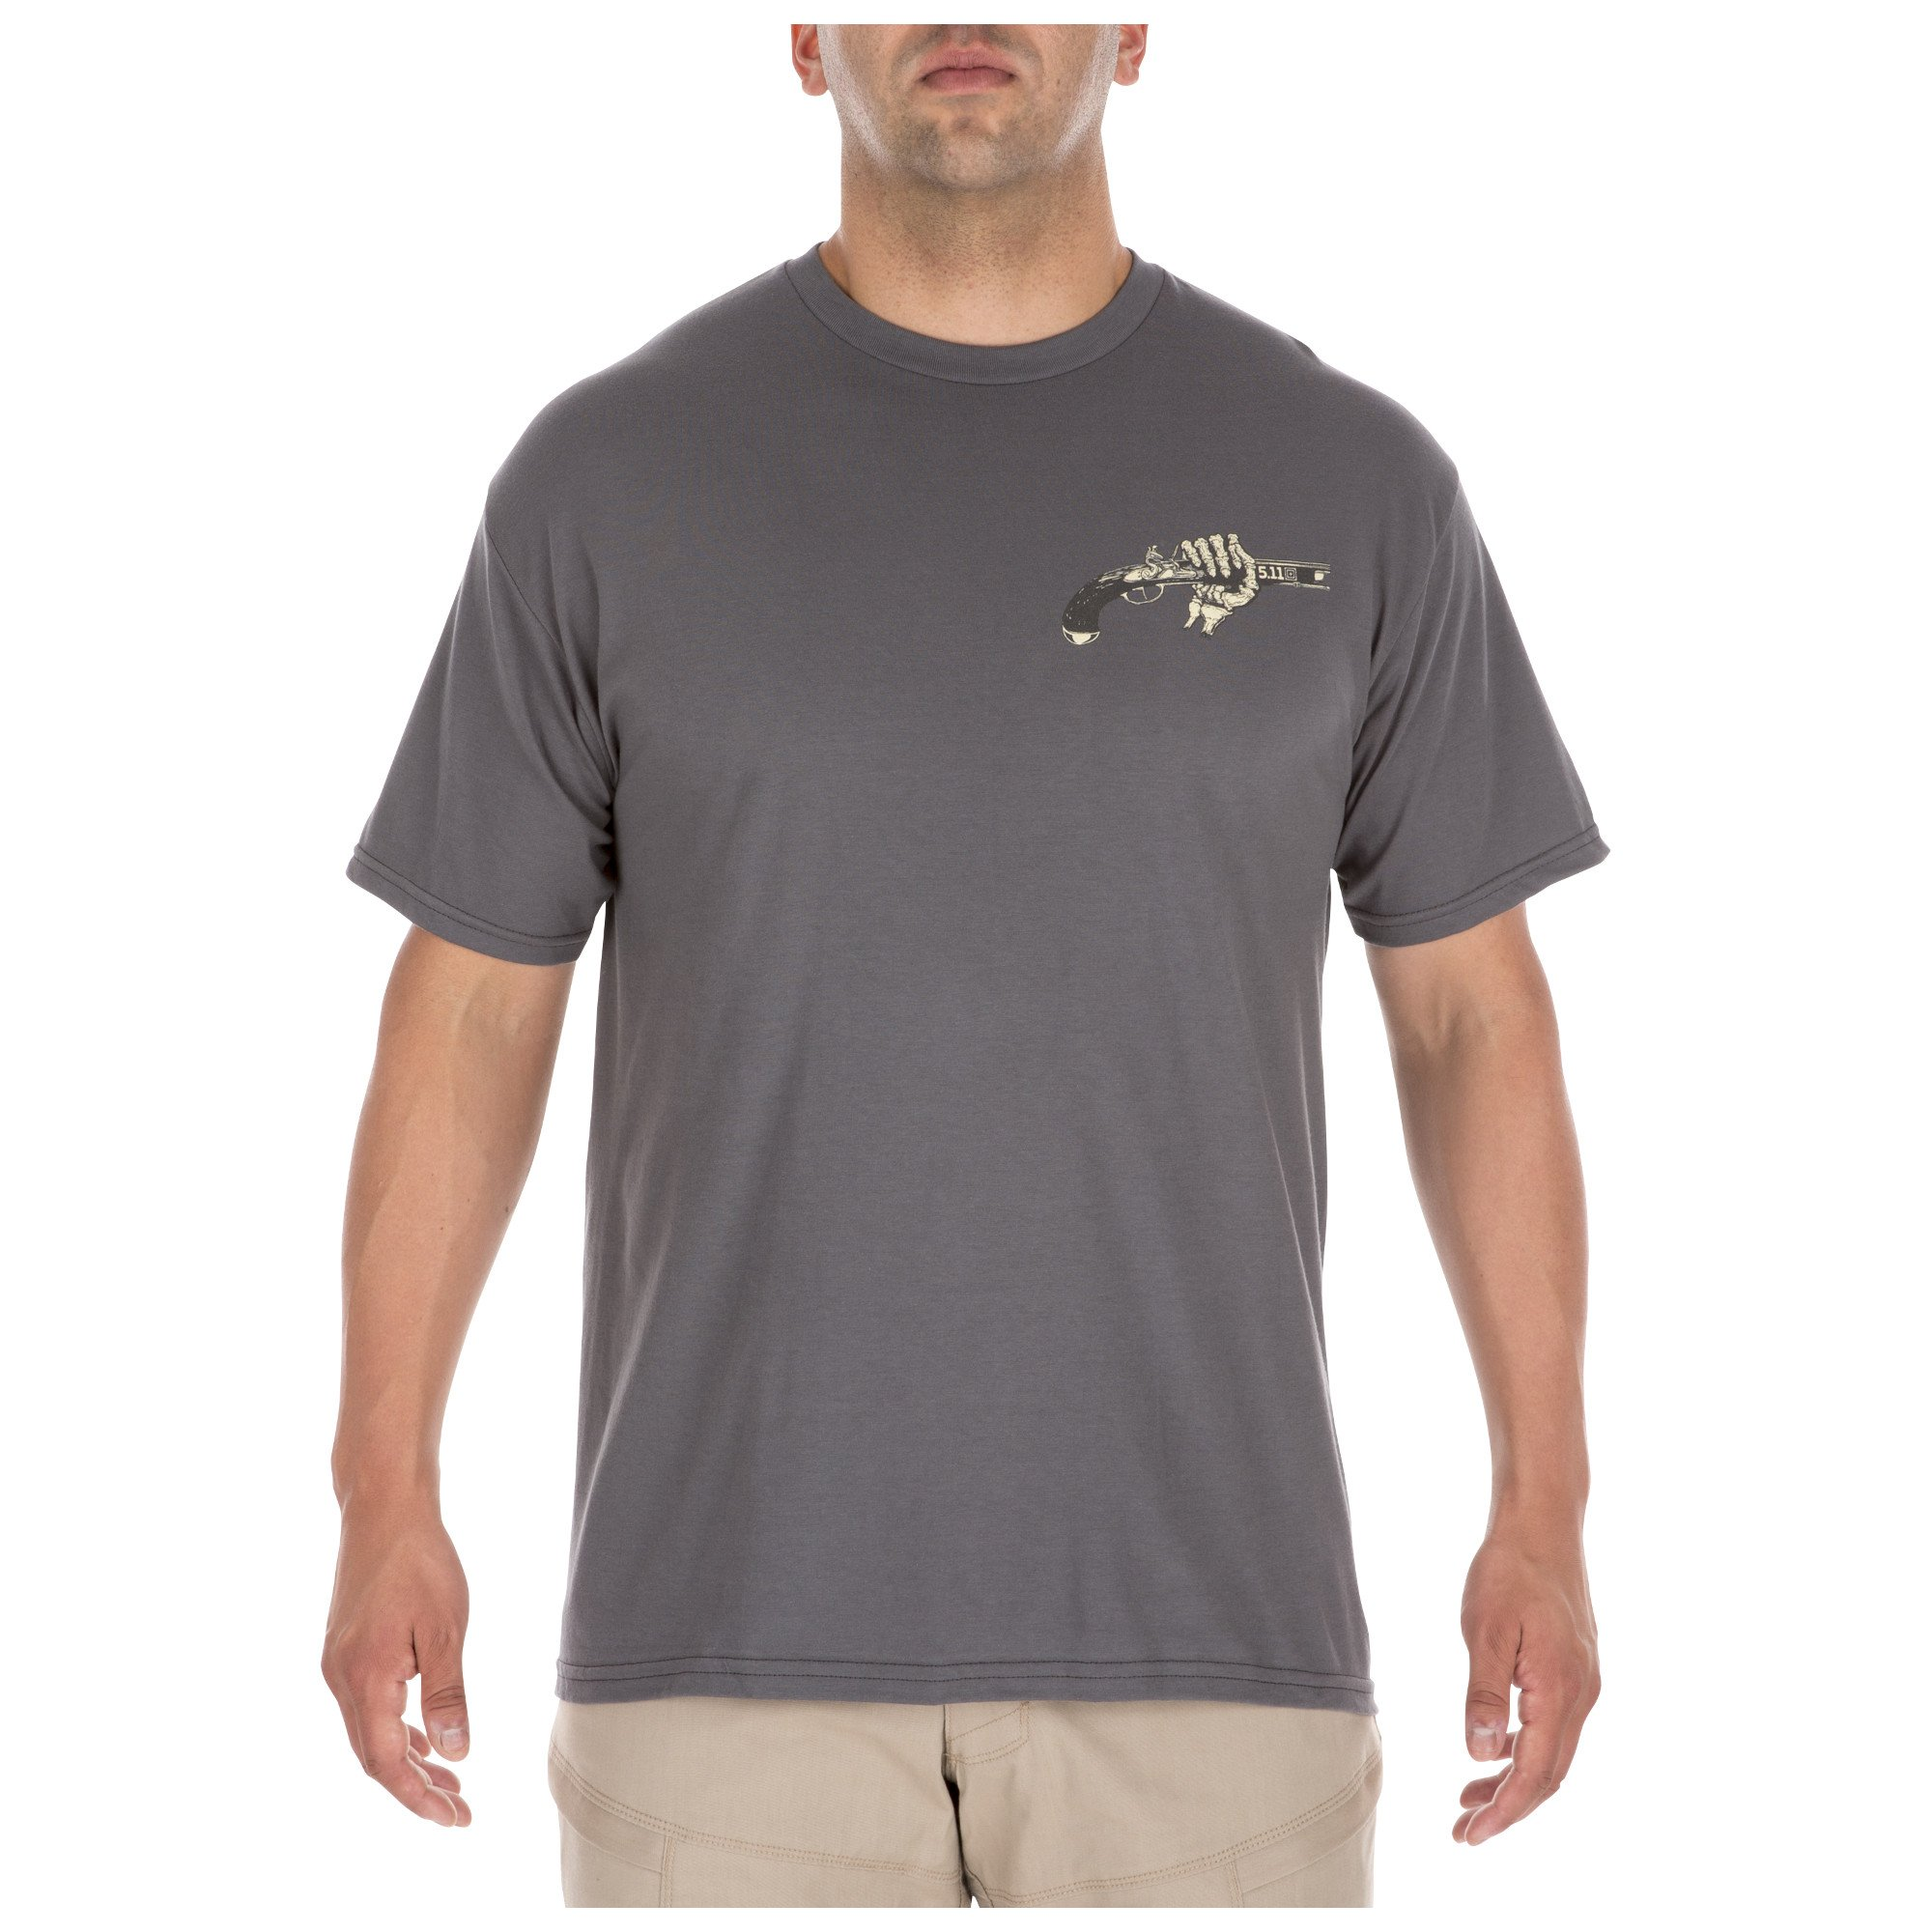 COLD HANDS TEE – CHARCOAL